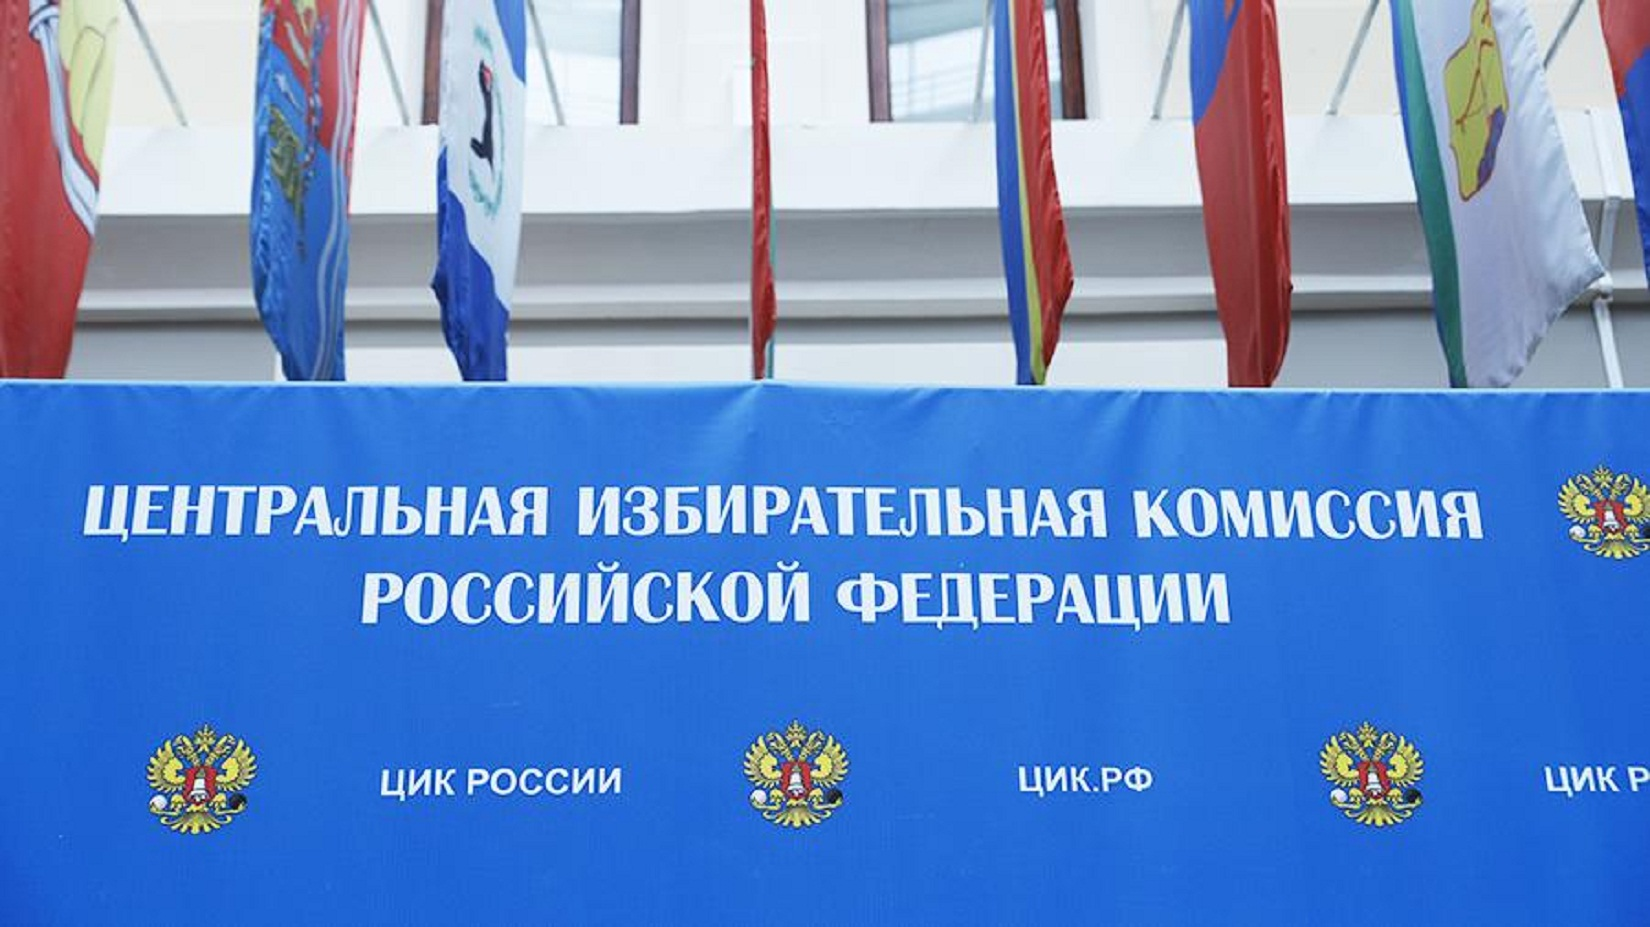 Photo of Russia's Central election Commission has cancel all elections schedule for the future